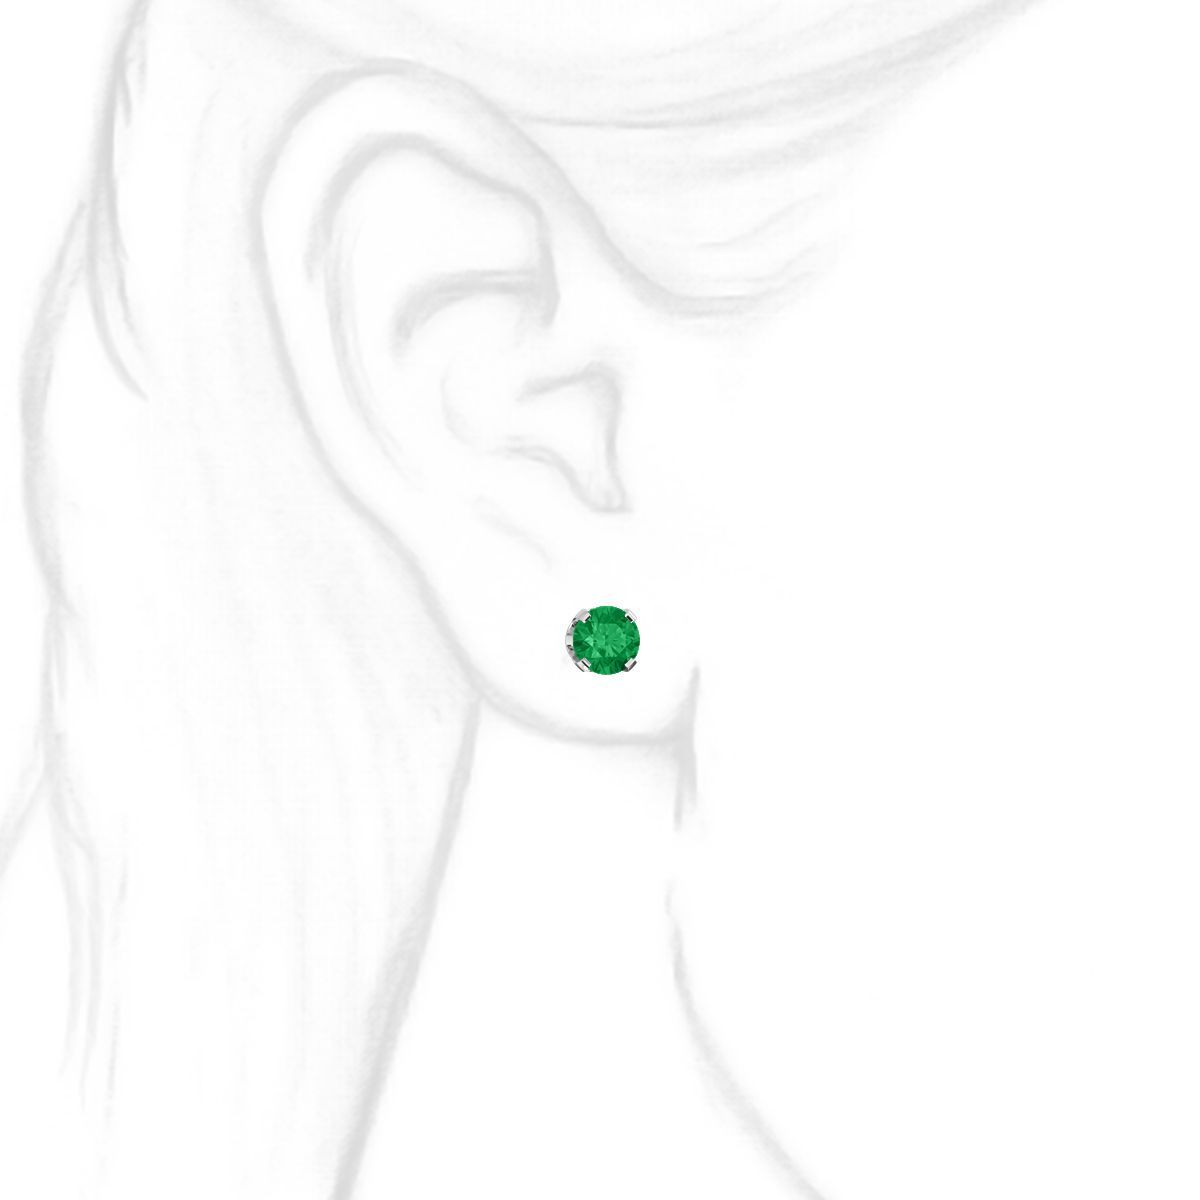 bdc8cf856 6mm, 1.5cts Trustmark Created Emerald 4-Prong Stud Earrings 14K White Gold  ...